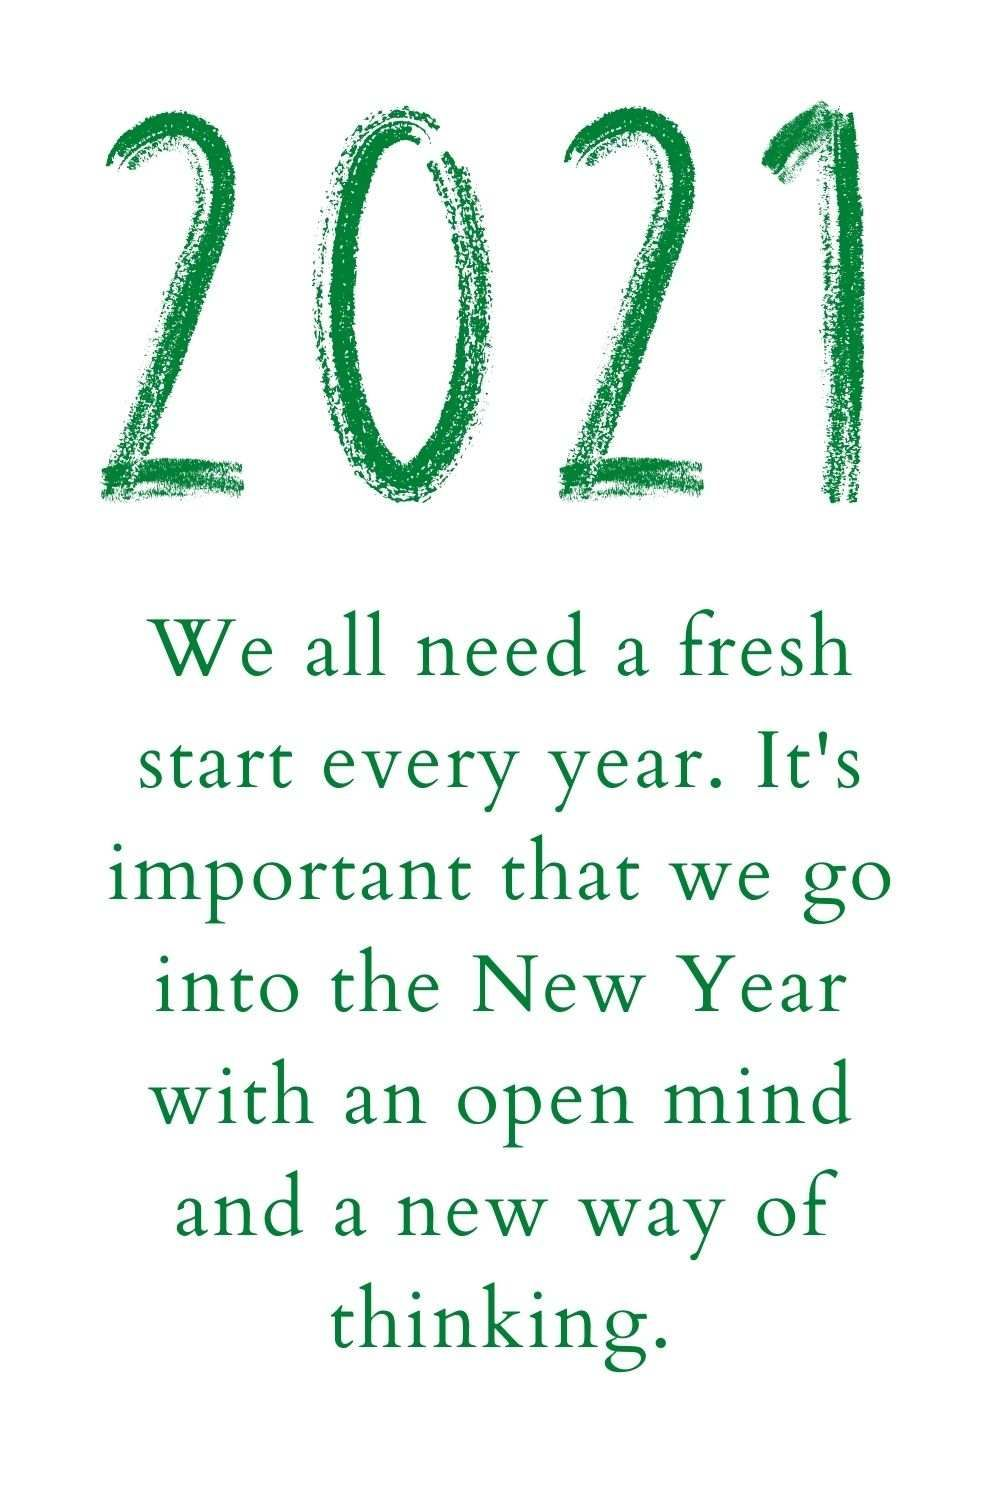 Happy New Year Backgrounds Wallpapers 2021 Hd Iphone Happy New Year Background Quotes About New Year Happy New Year Images